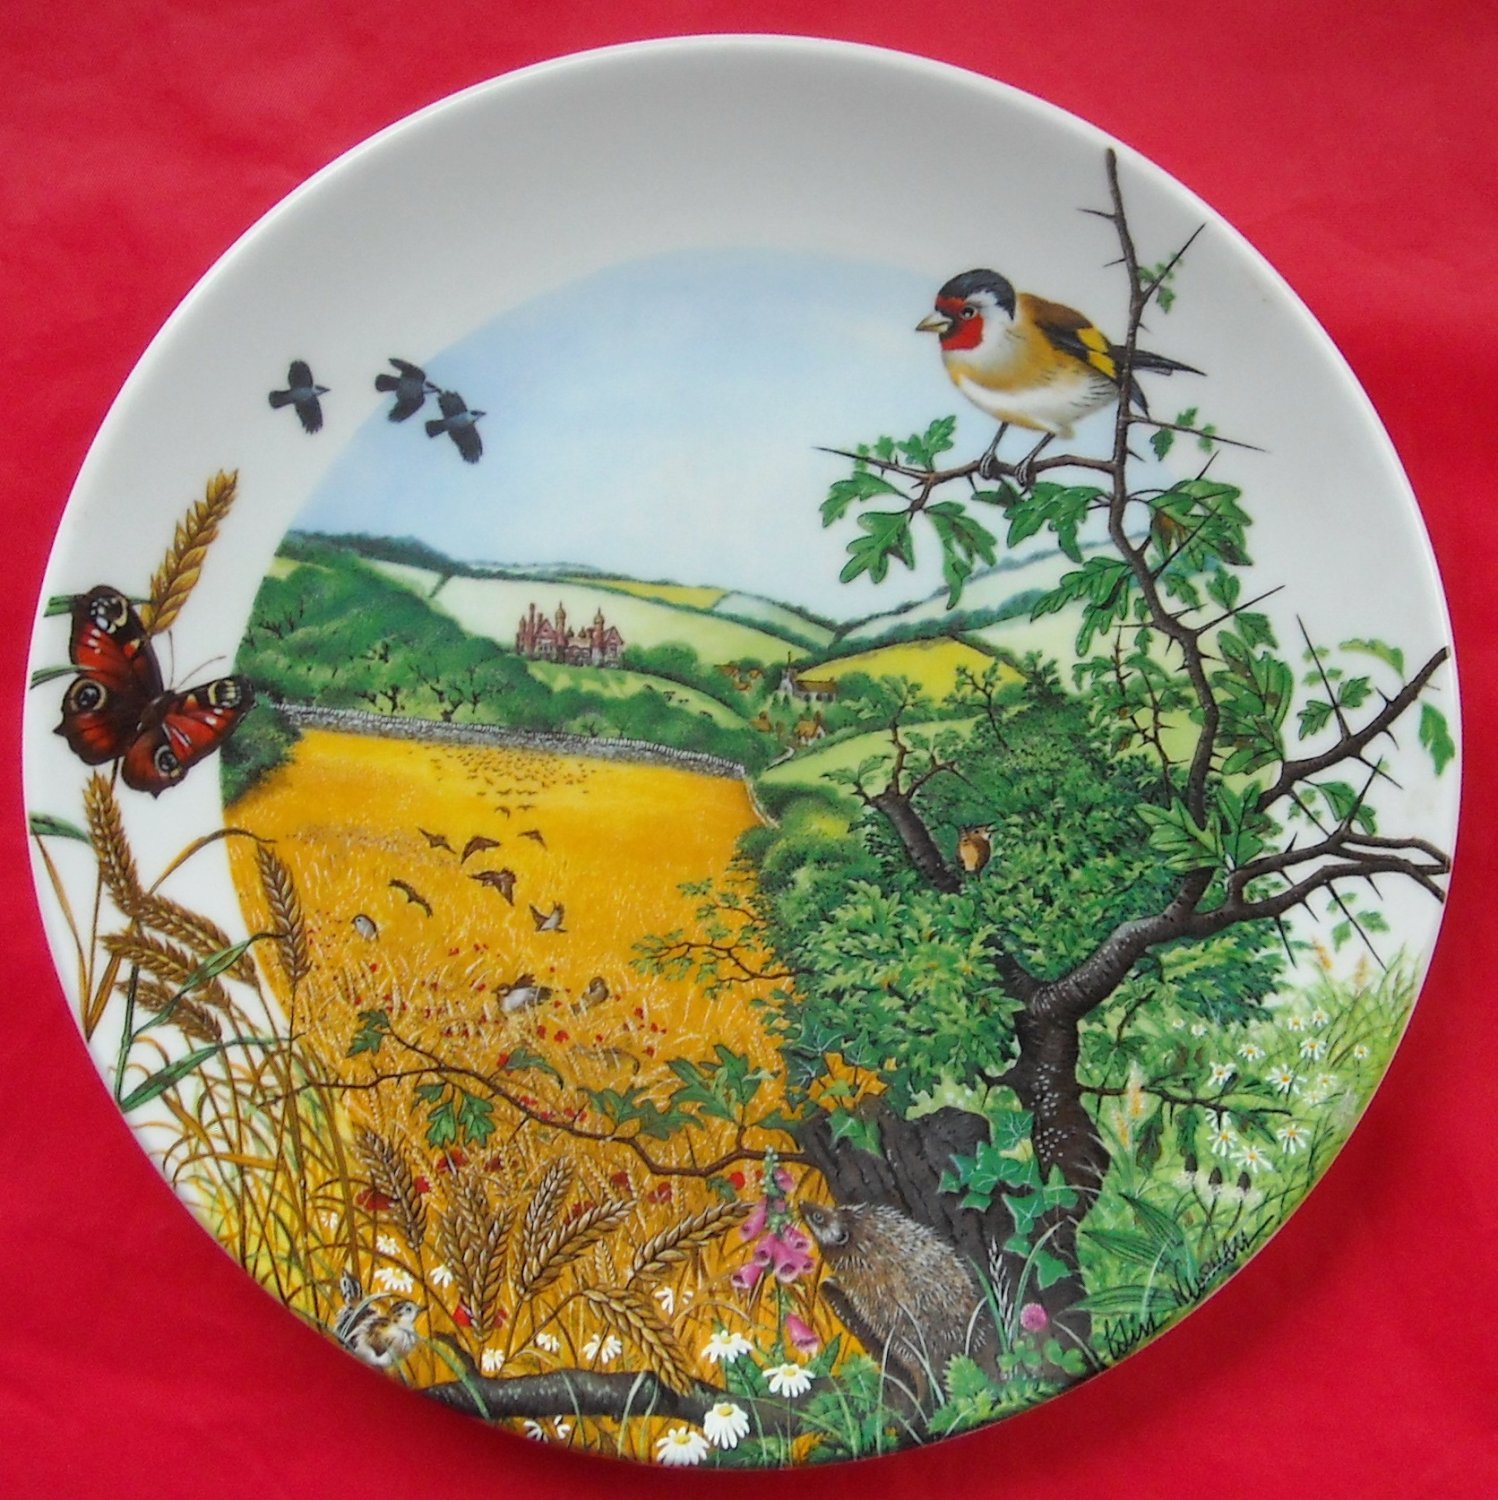 Colin Newmans Country Panorama The Village in the valley 1987 Wedgwood wall plate